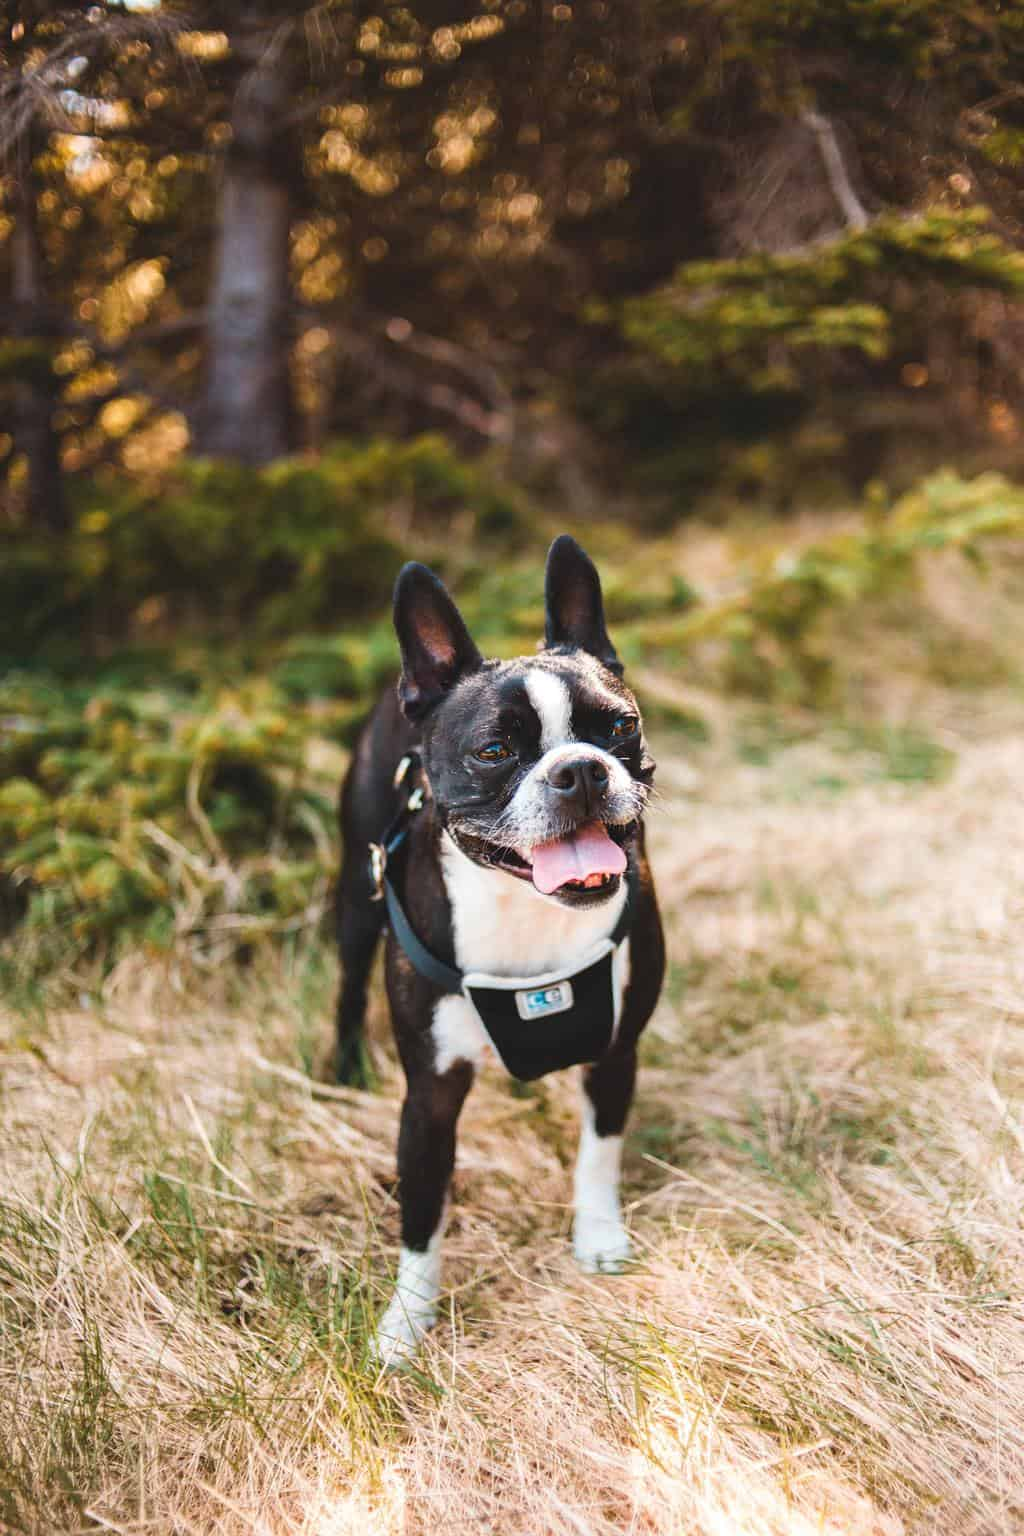 Dog with harness stepping on grass